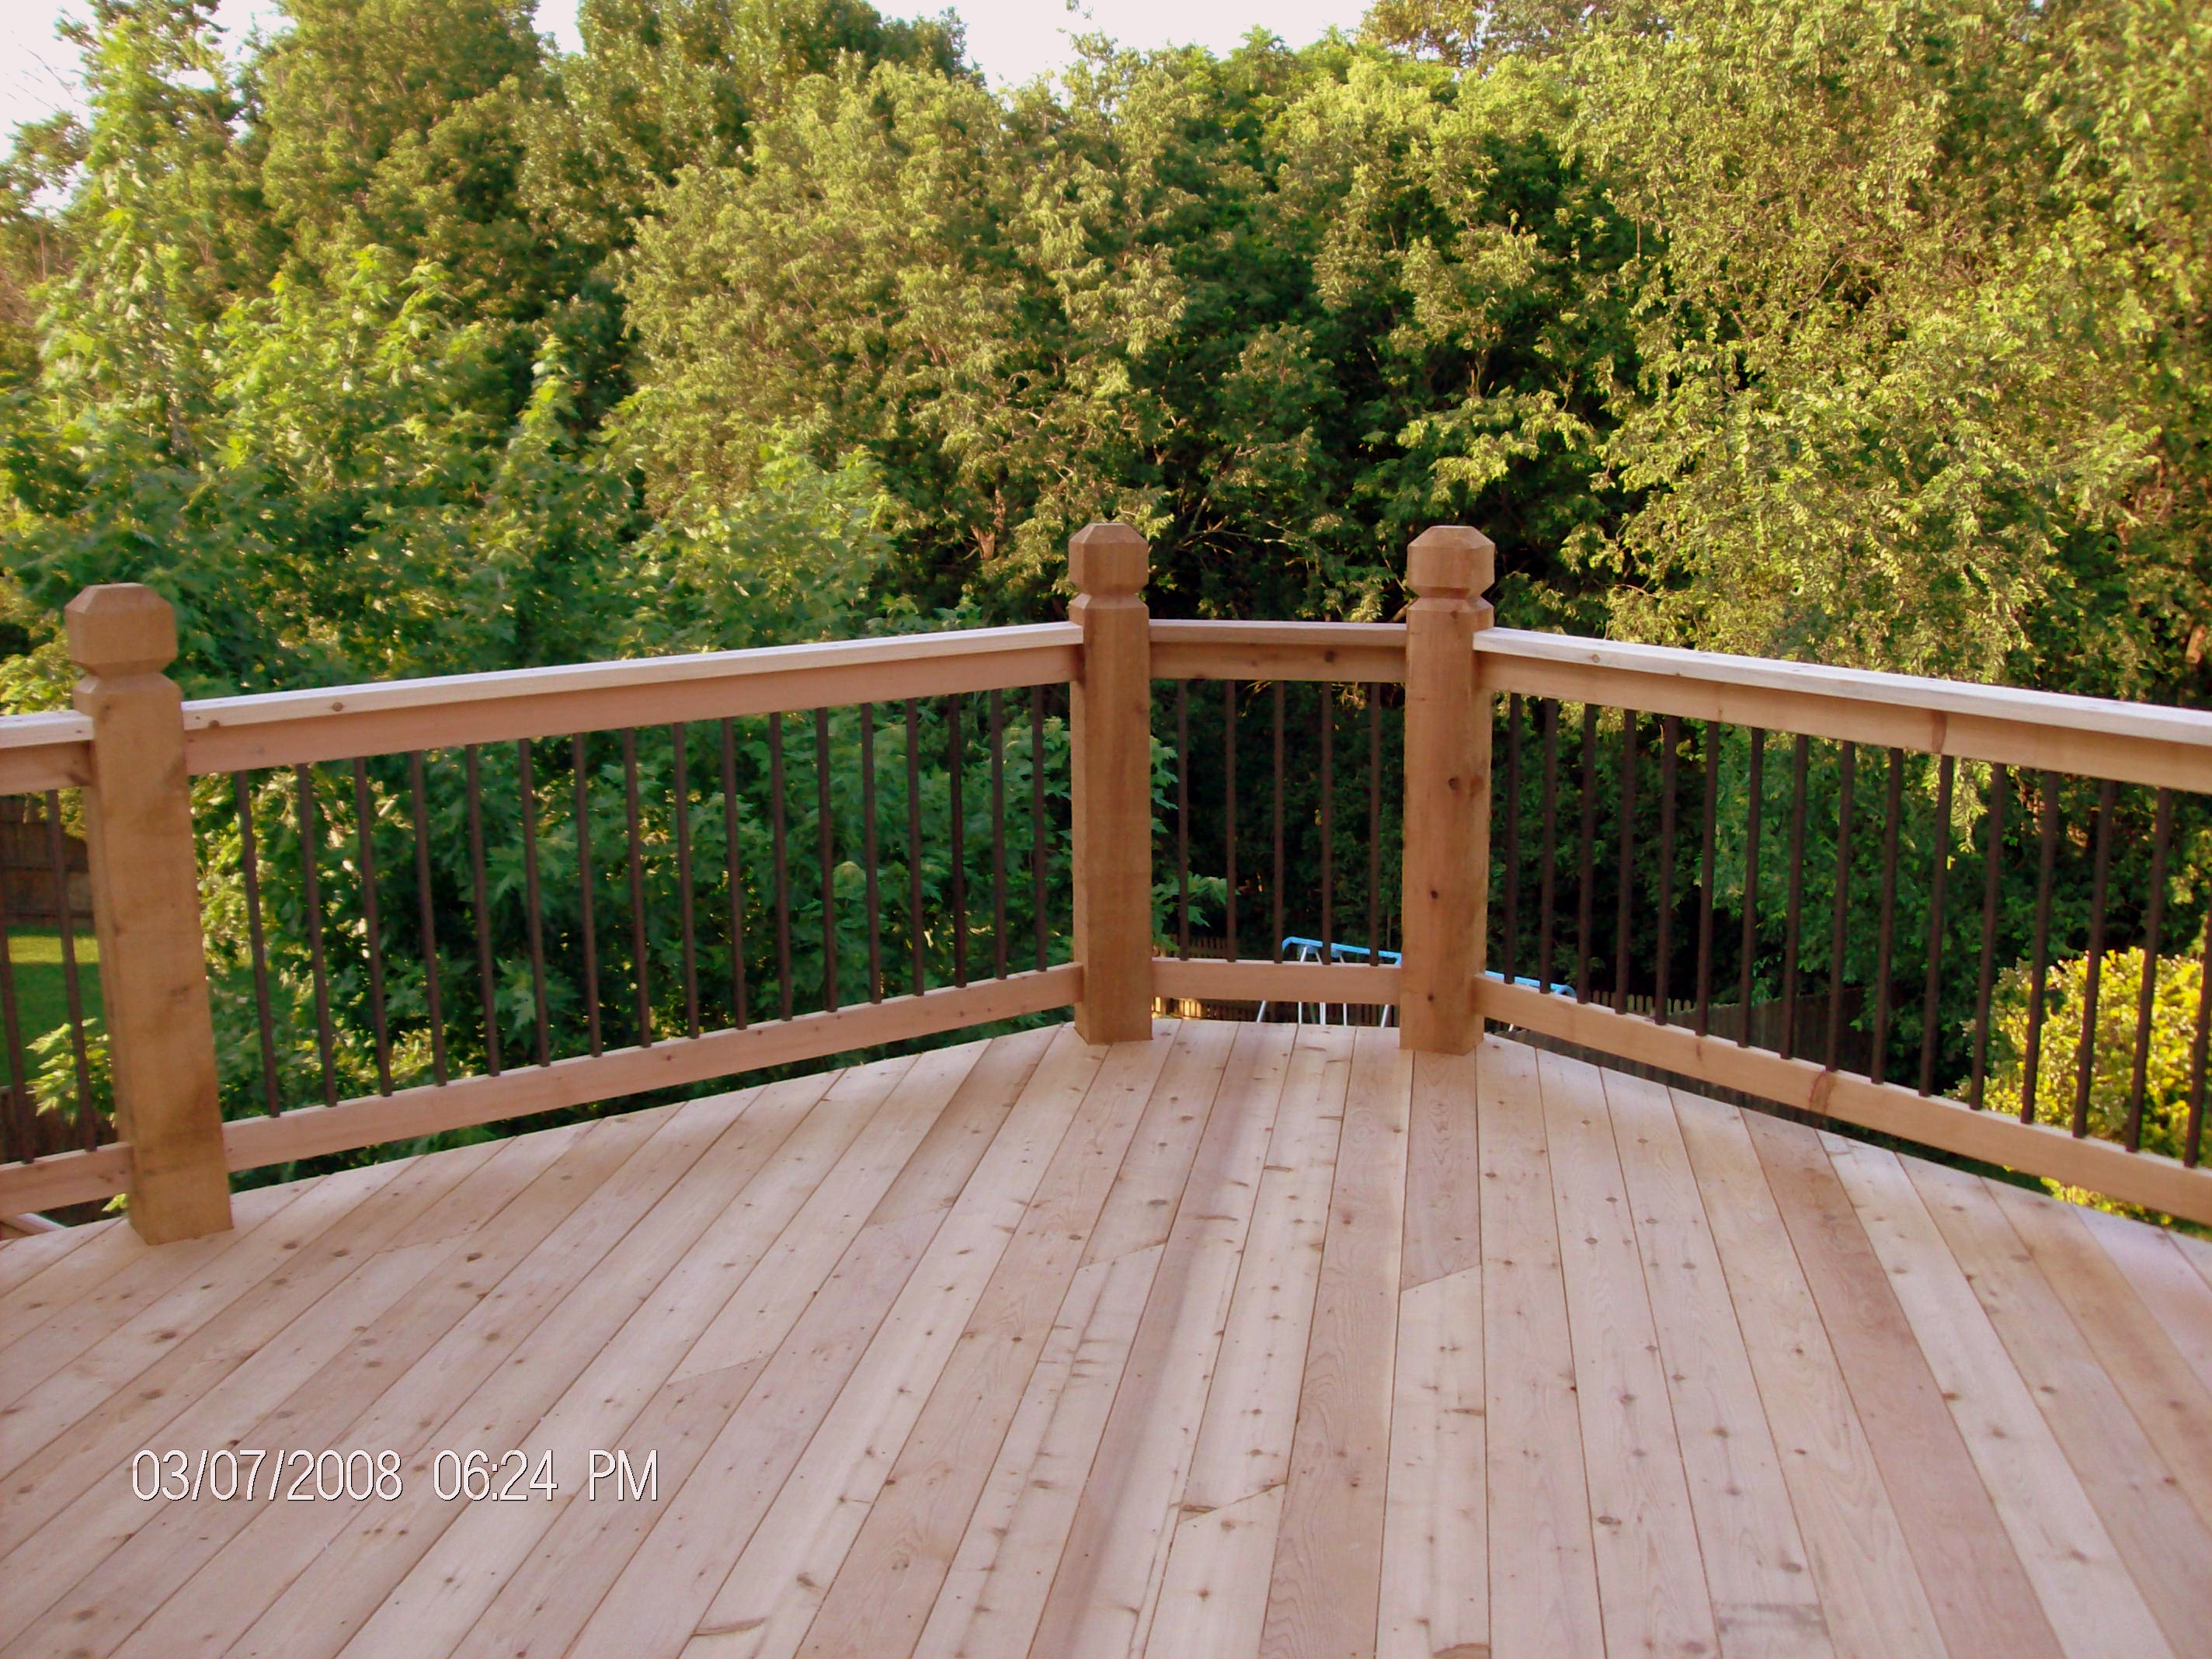 Mike jansen custom cedar decks composite cedar deck products still one of the best choices for decking material today western red cedar decks are hard to beat for value appearance and versatility baanklon Image collections